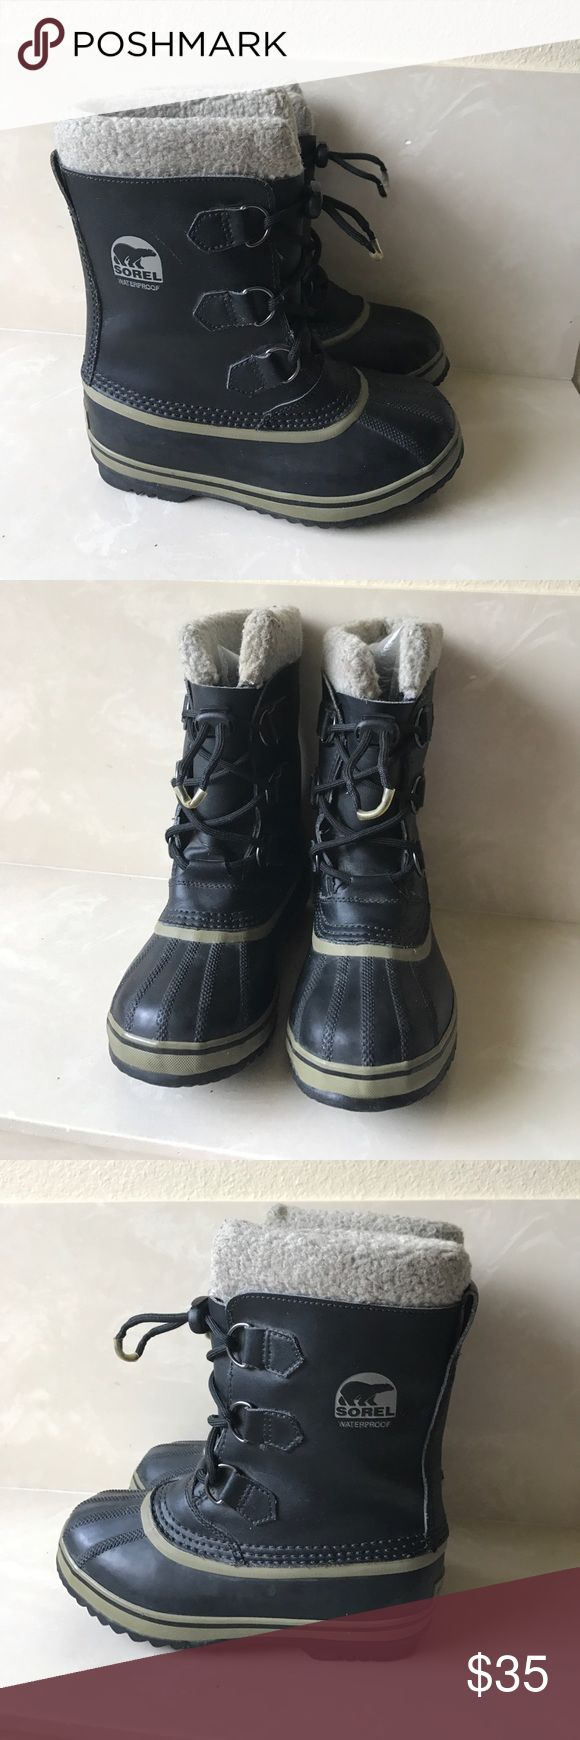 Sorel boys winter boots sz 3 Sorel boys winter boots sz 3 good condition liners are slightly worn and need cleaning Sorel Shoes Rain & Snow Boots